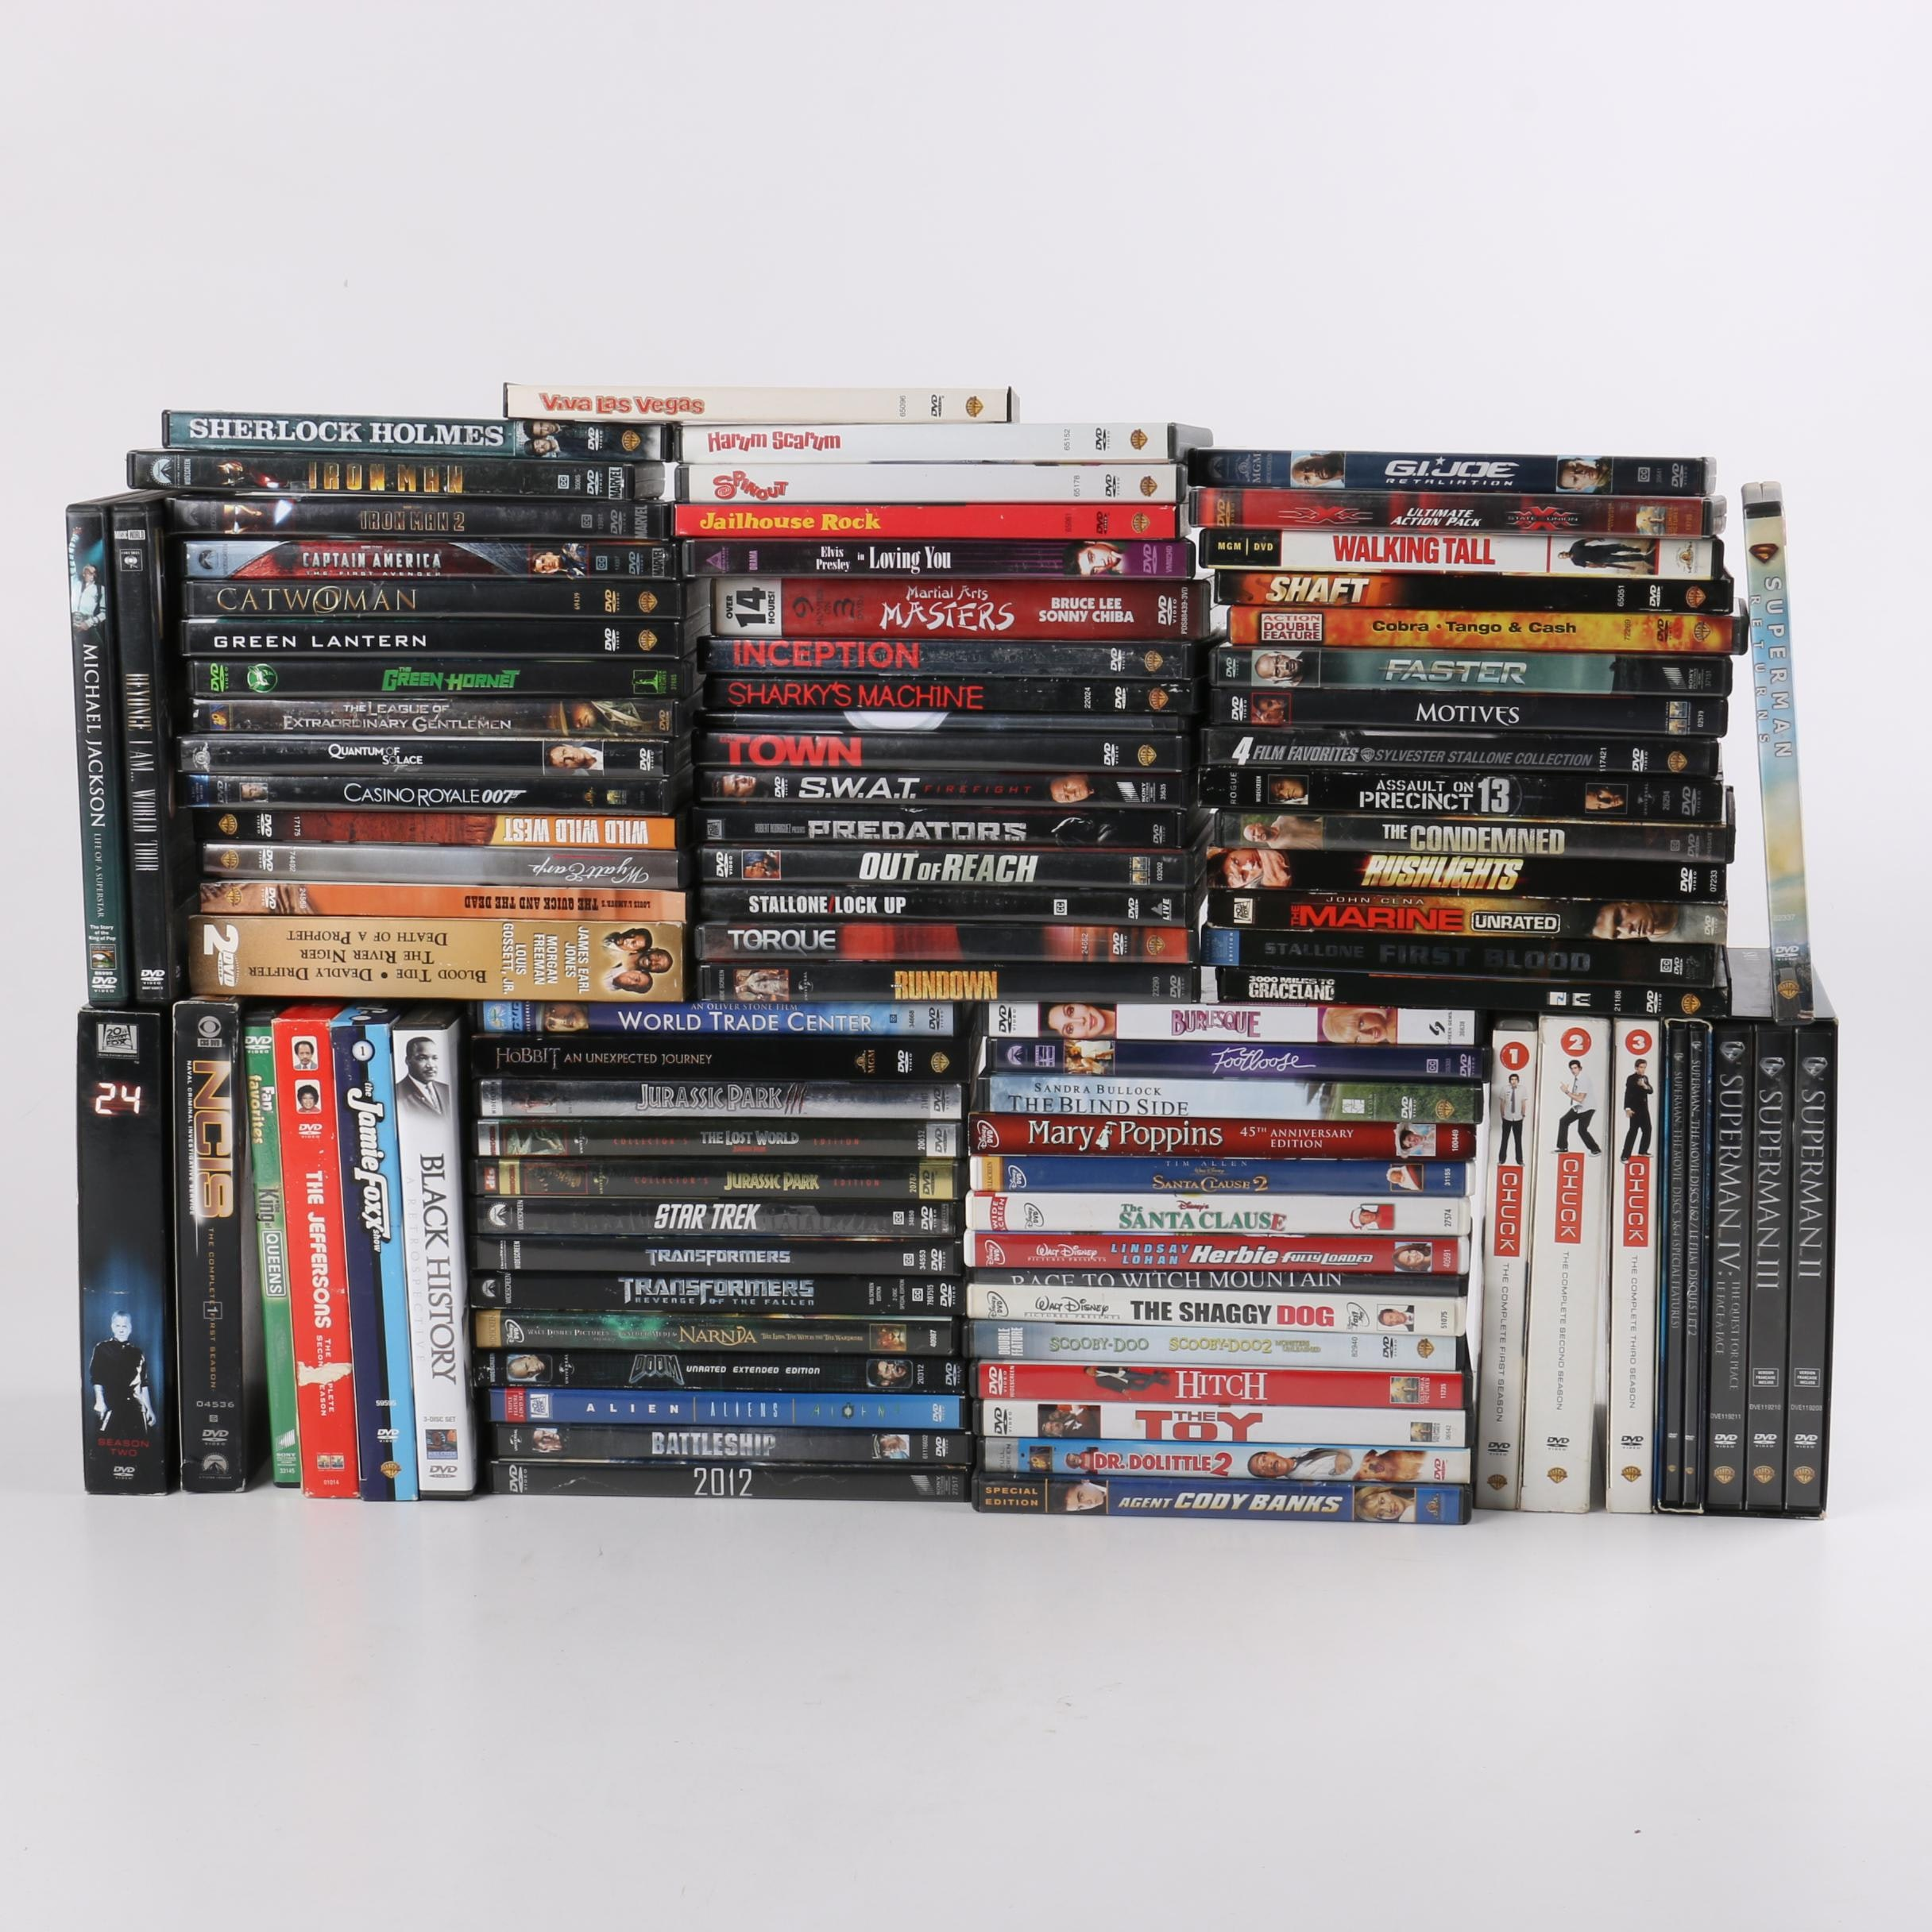 Star Trek, Superman and 70 Other DVDs